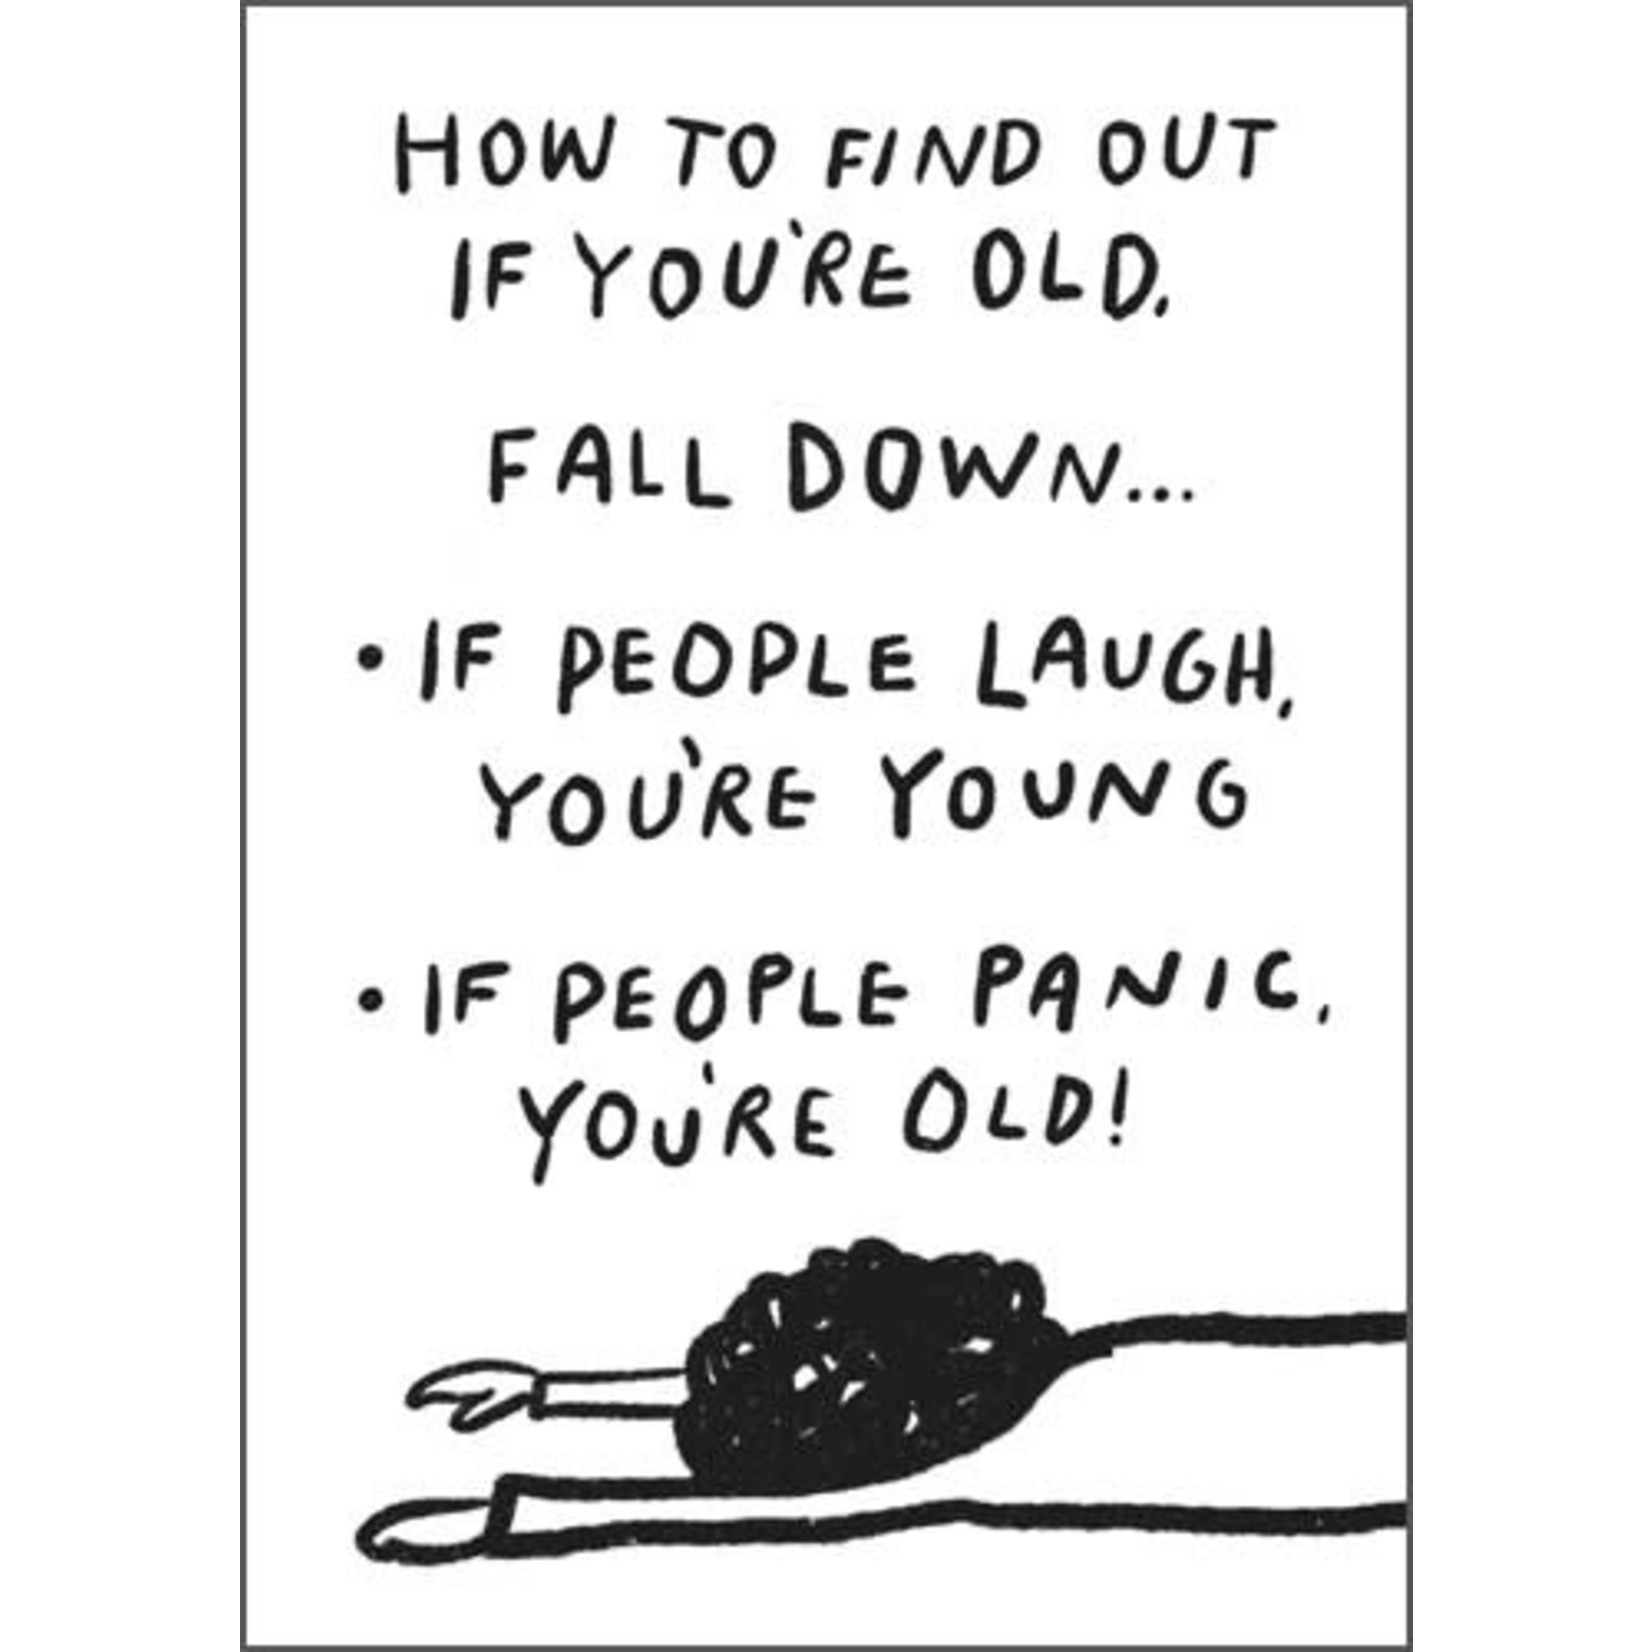 HOW TO FIND OUT IF YOU ARE OLD CARD